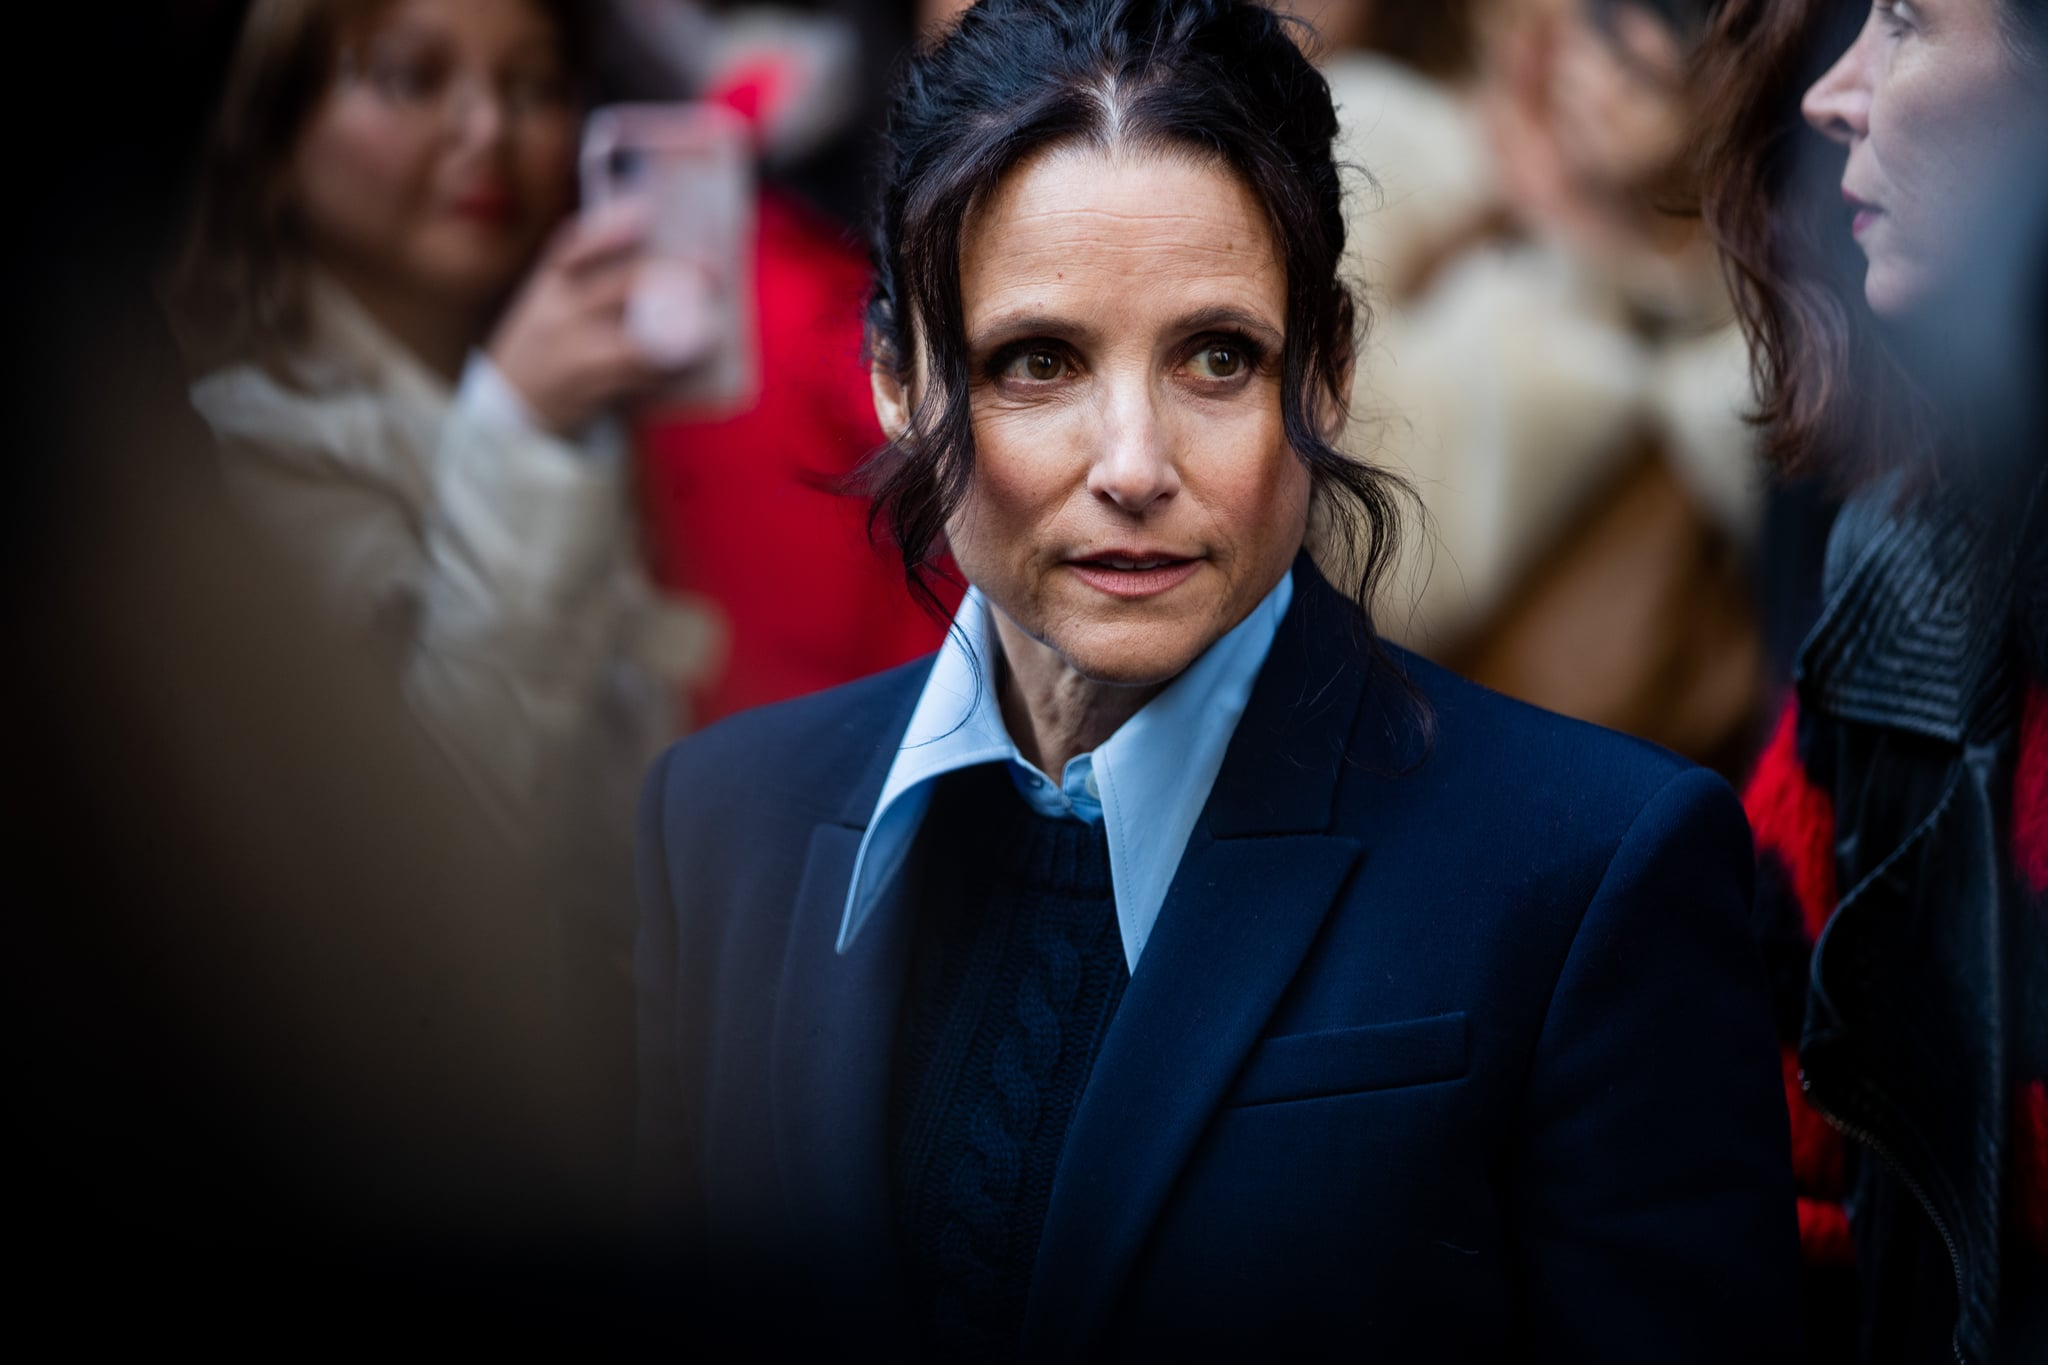 NEW YORK, NEW YORK - FEBRUARY 12: Julia Louis-Dreyfus is seen outside Michael Kors during New York Fashion Week Fall / Winter 2020 on February 12, 2020 in New York City. (Photo by Christian Vierig/Getty Images)